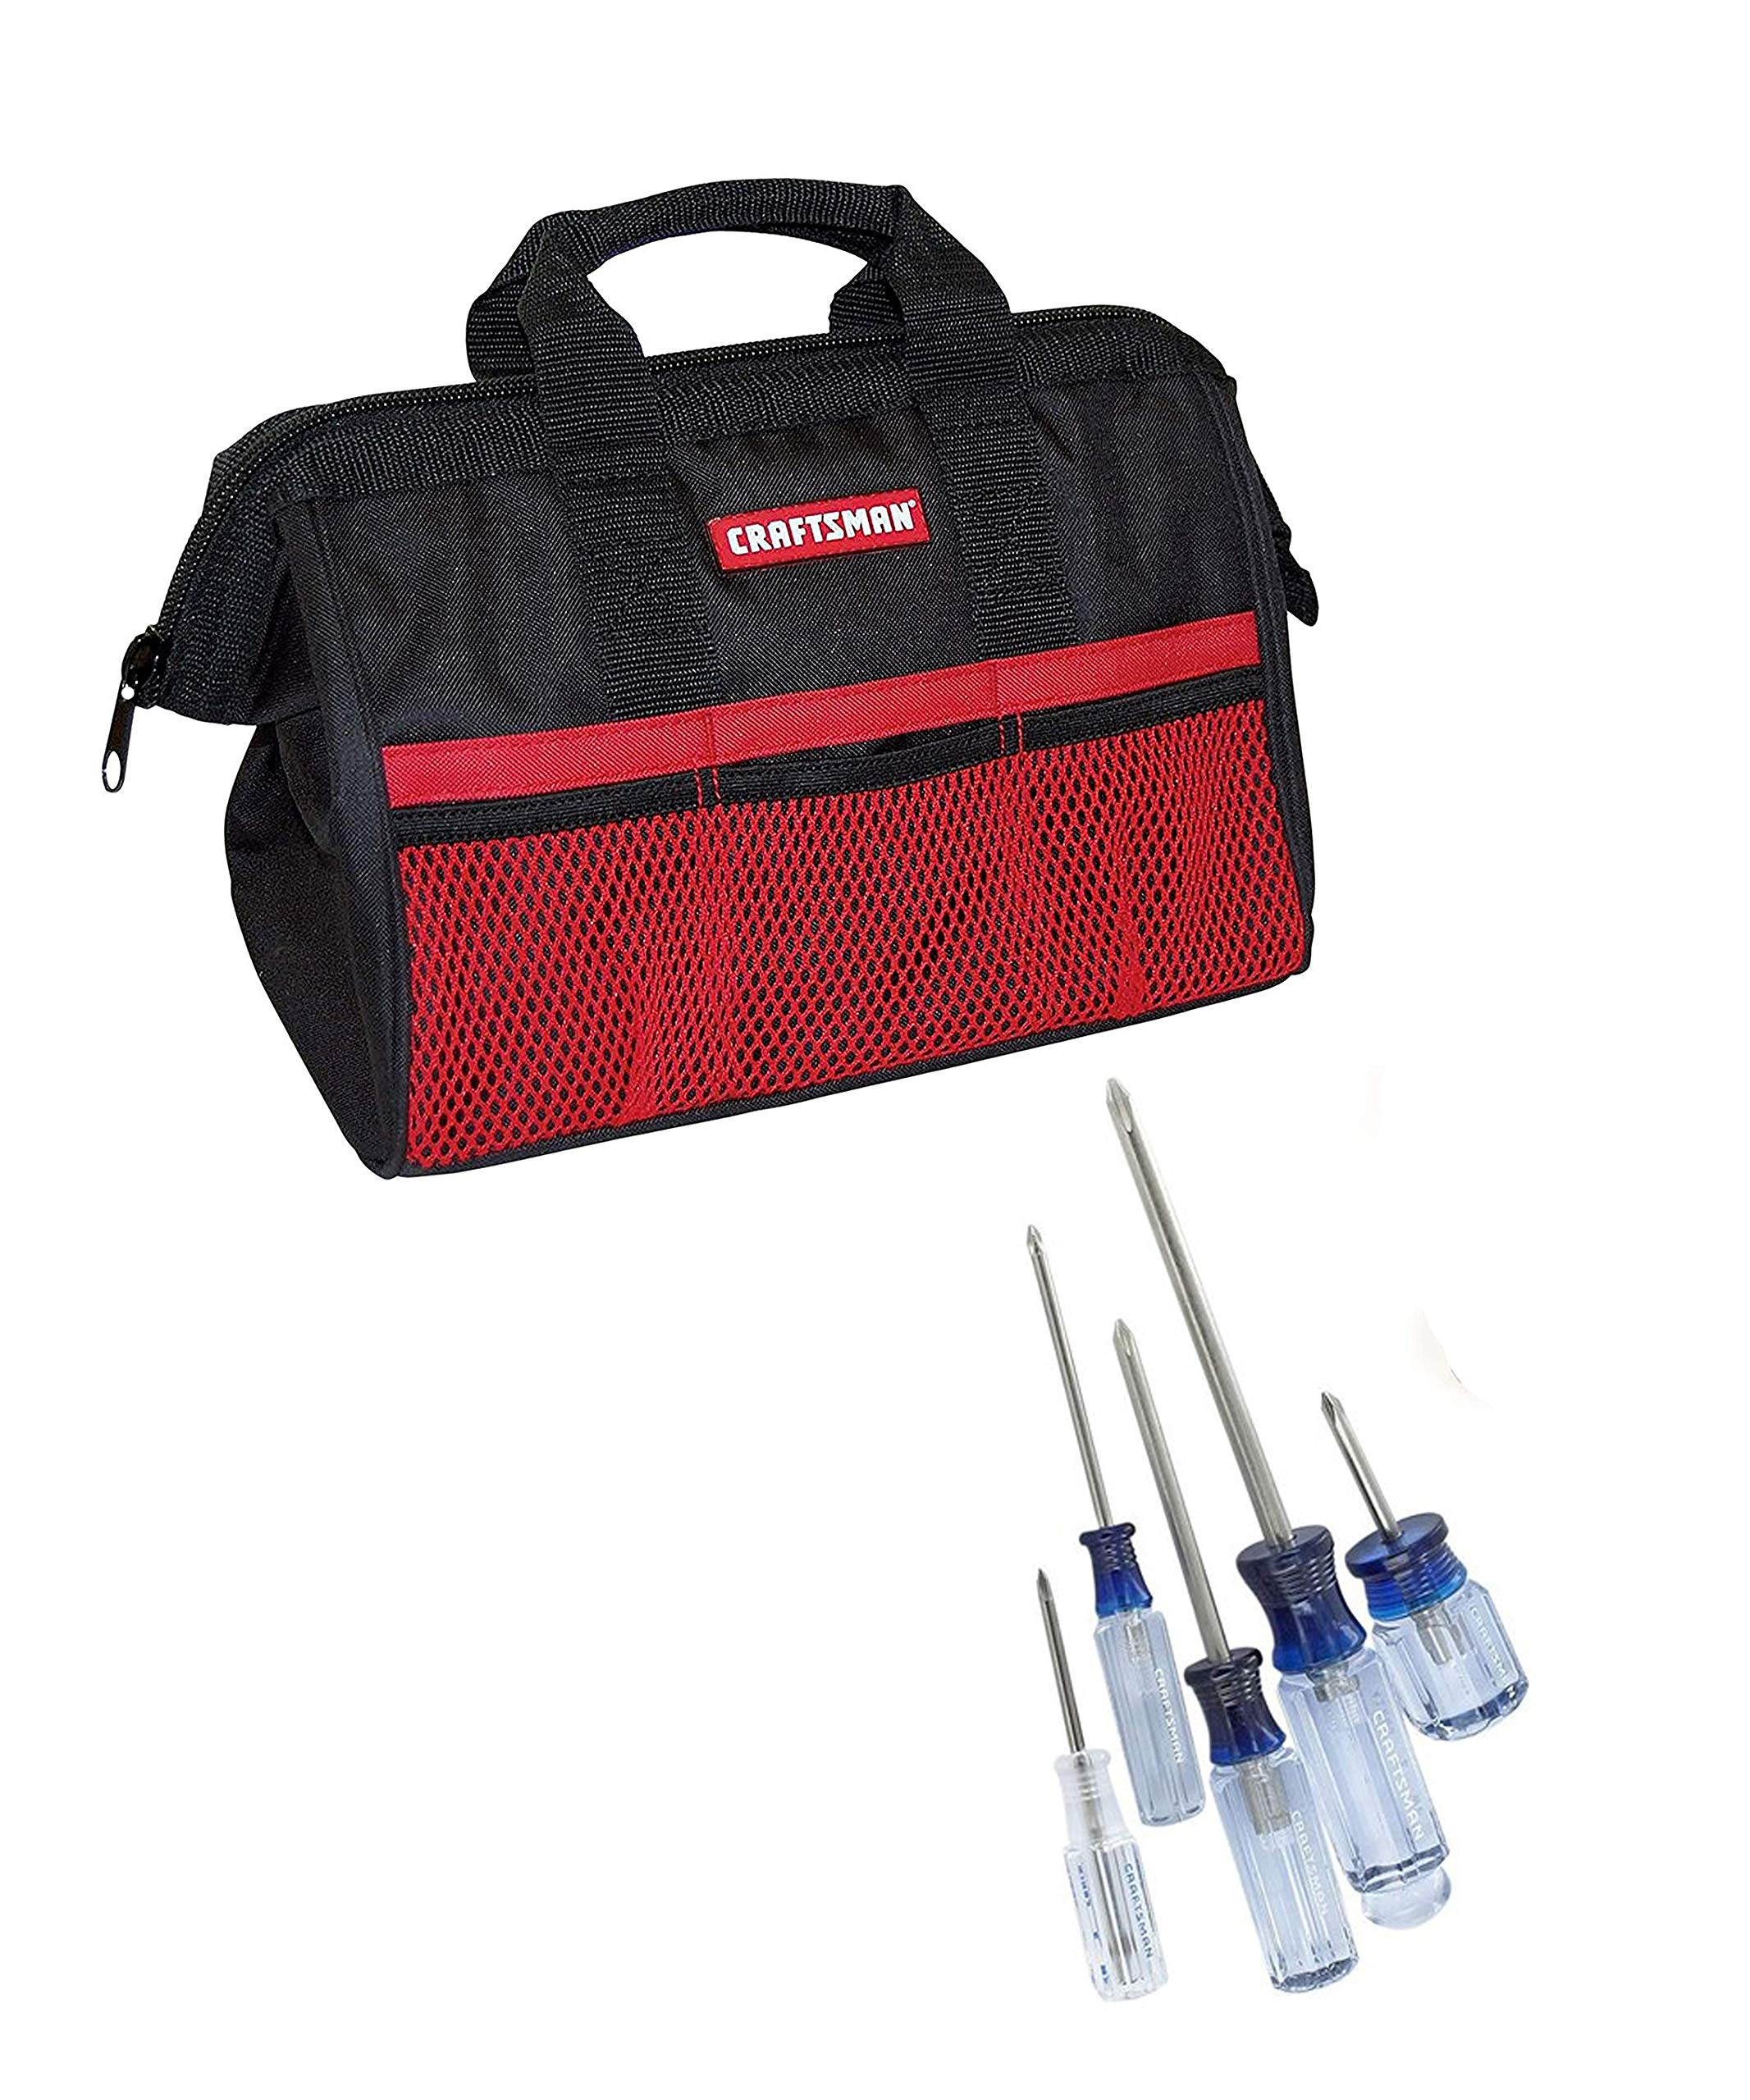 All In 1 Tool Bag, Made in USA Tools and Tool Bag Bundle by Main + Oak